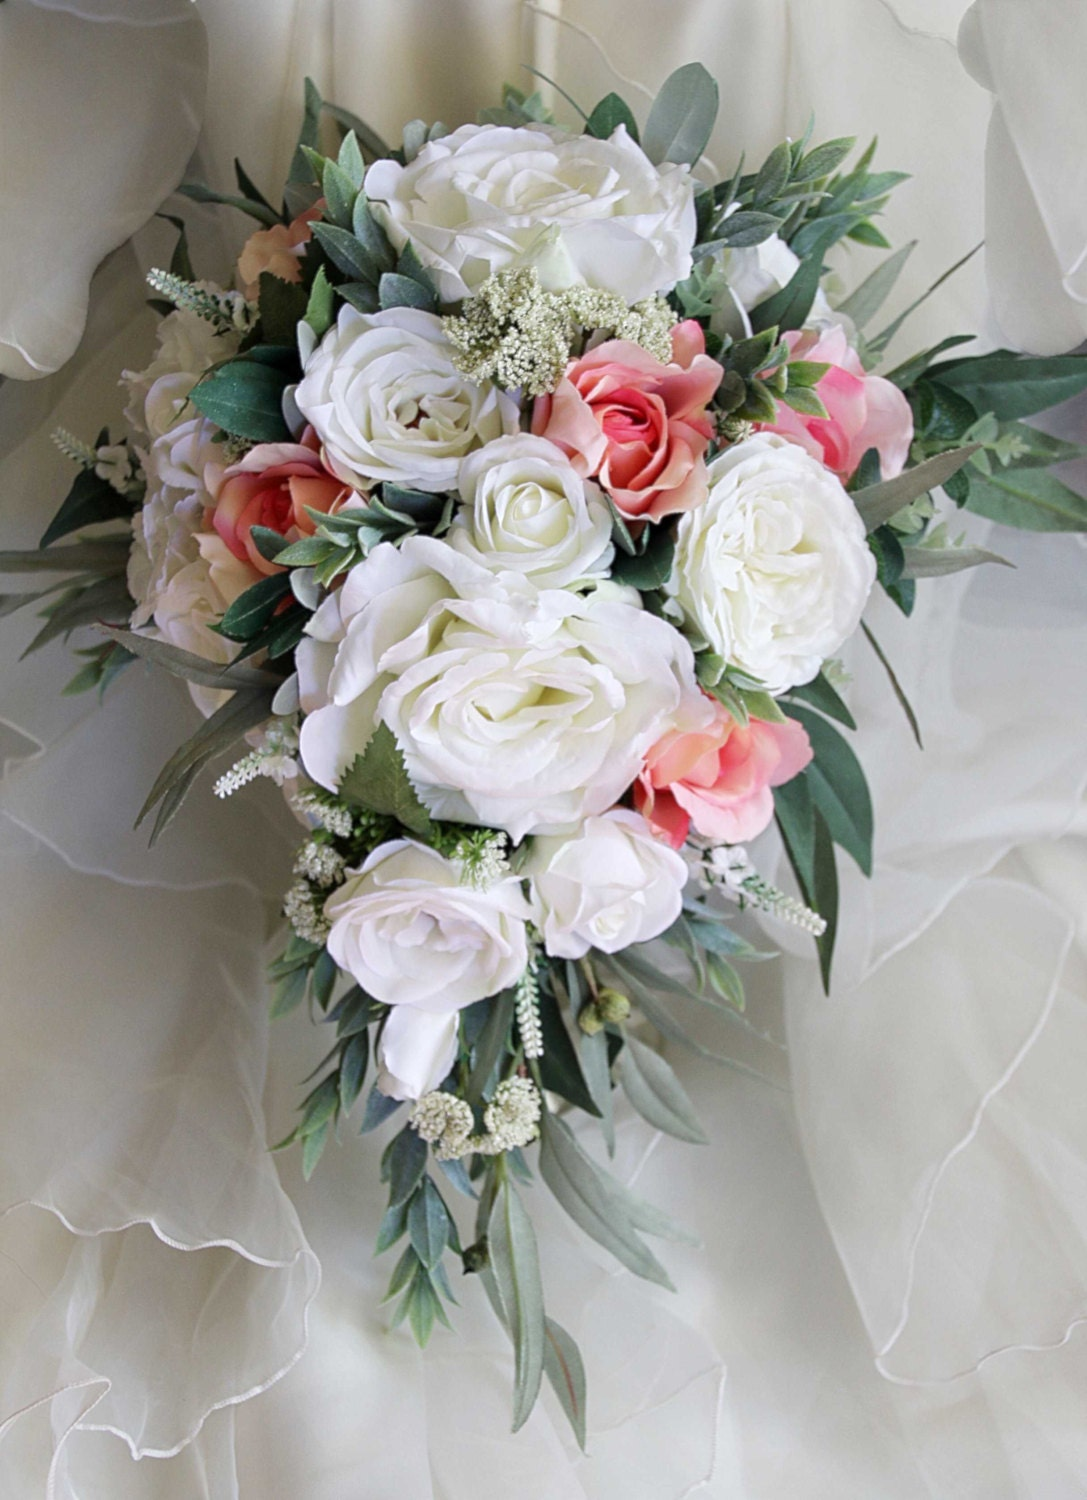 Teardrop Cascade Bridal Bouquet Wedding Flowers Artificial